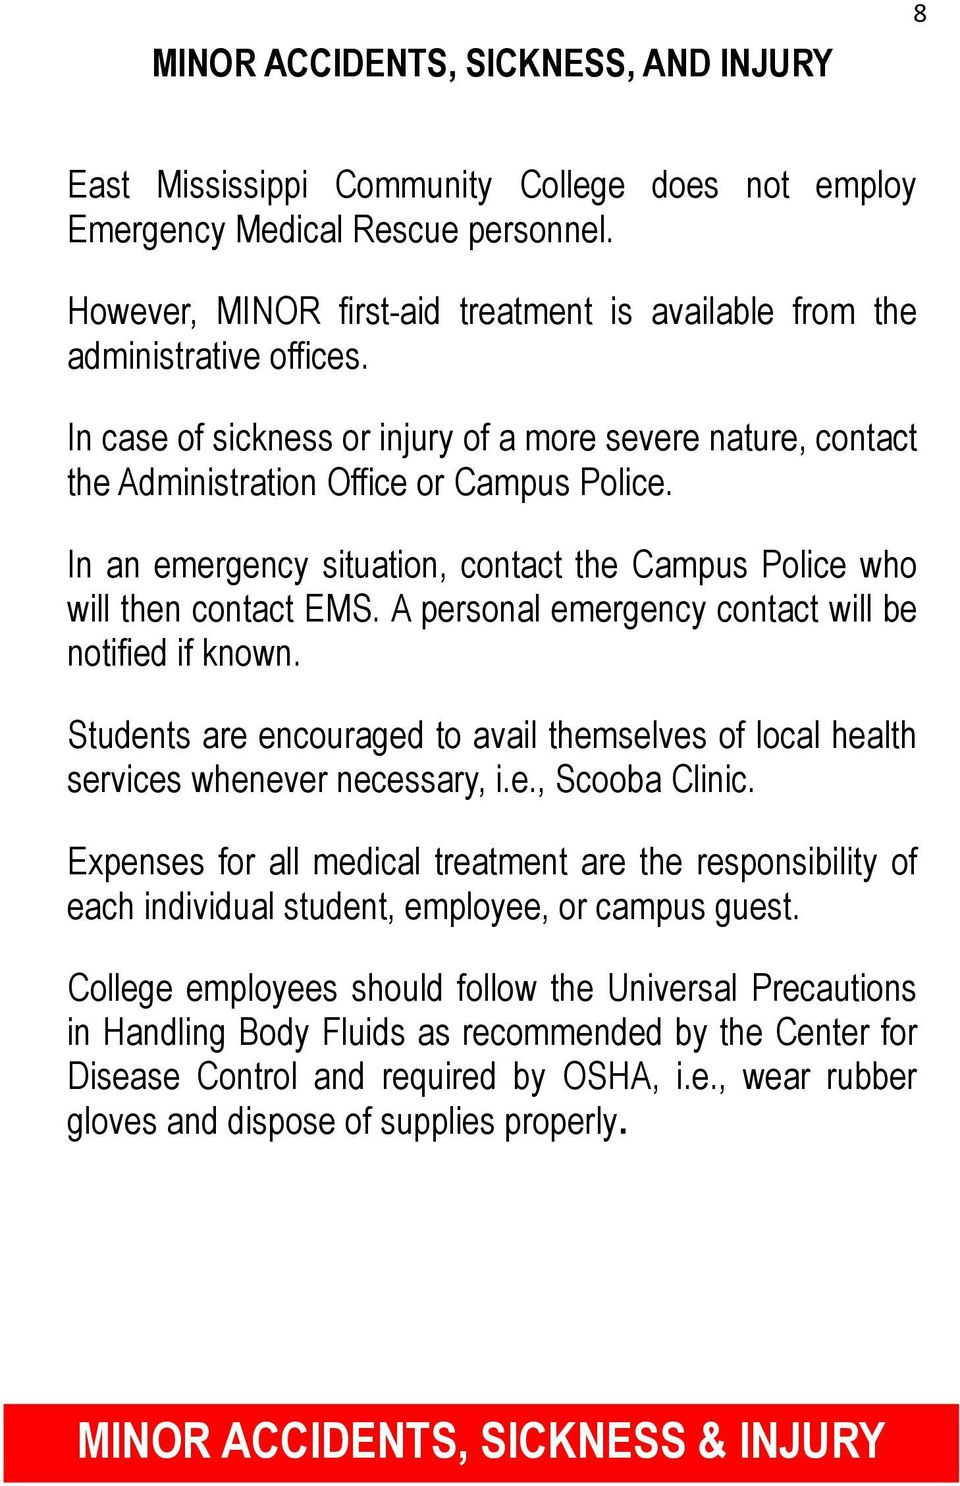 In an emergency situation, contact the Campus Police who will then contact EMS. A personal emergency contact will be notified if known.